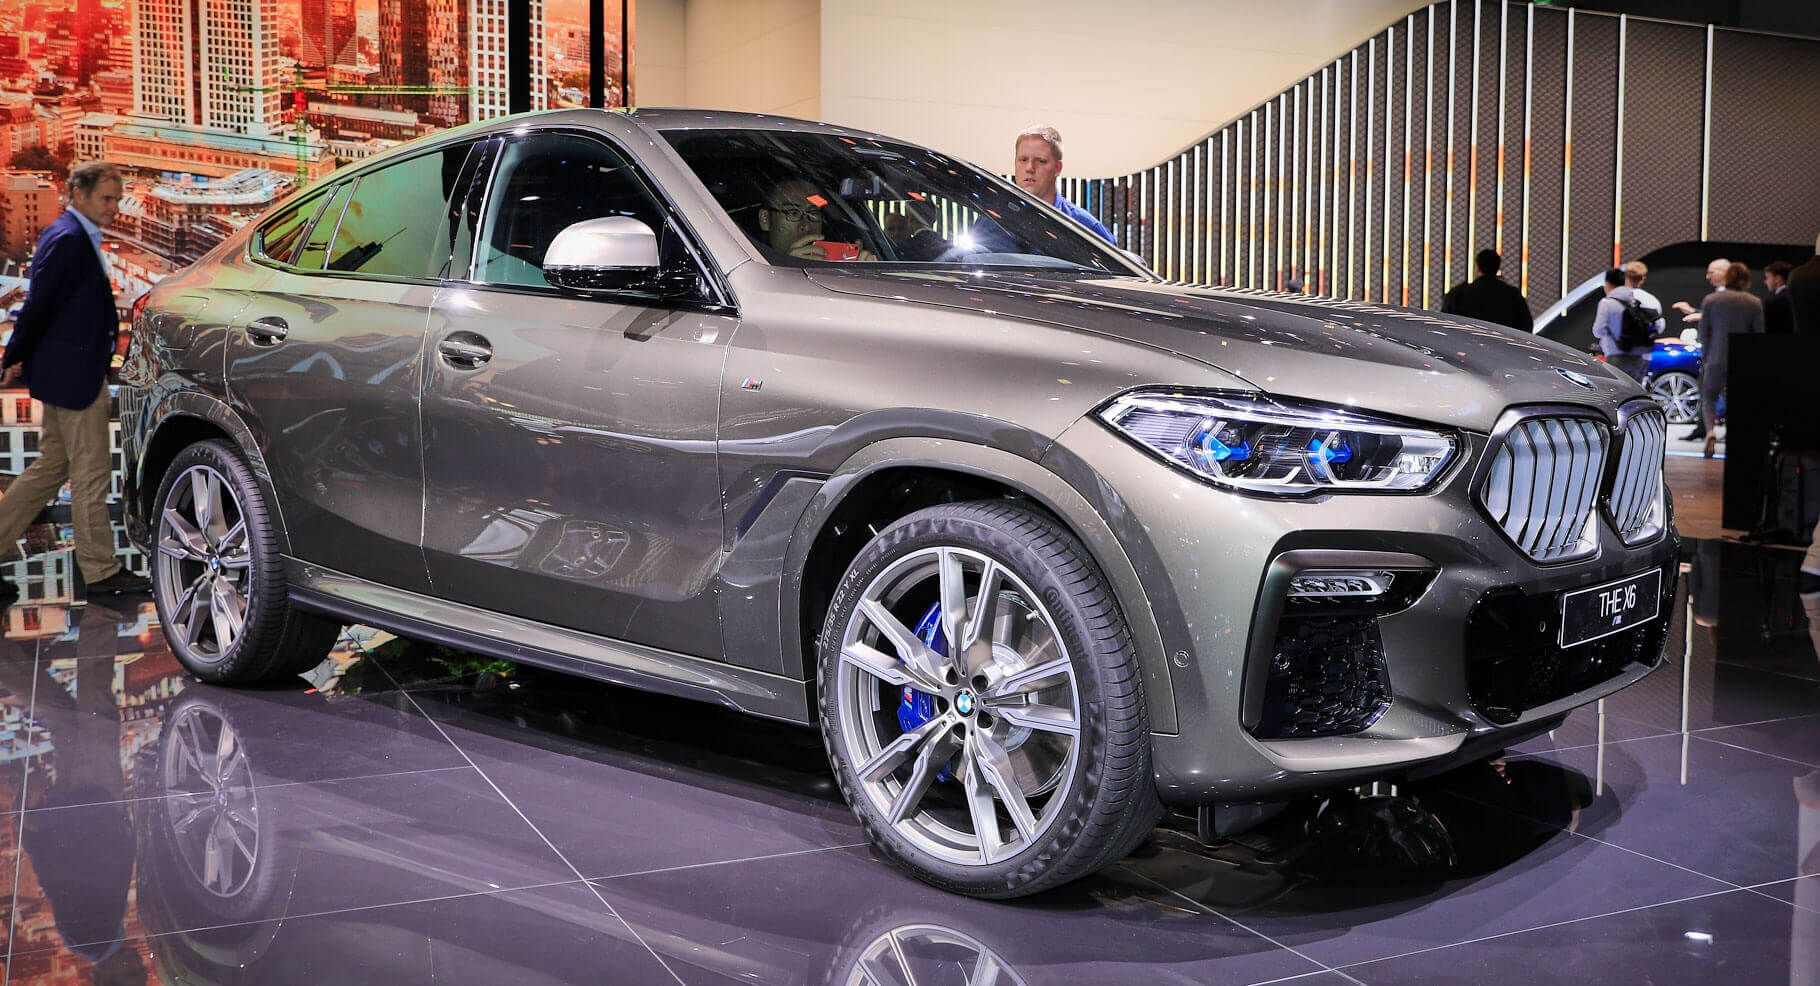 The Bold And The Very Fast 2020 Bmw X6 M50i Lands On Home Soil